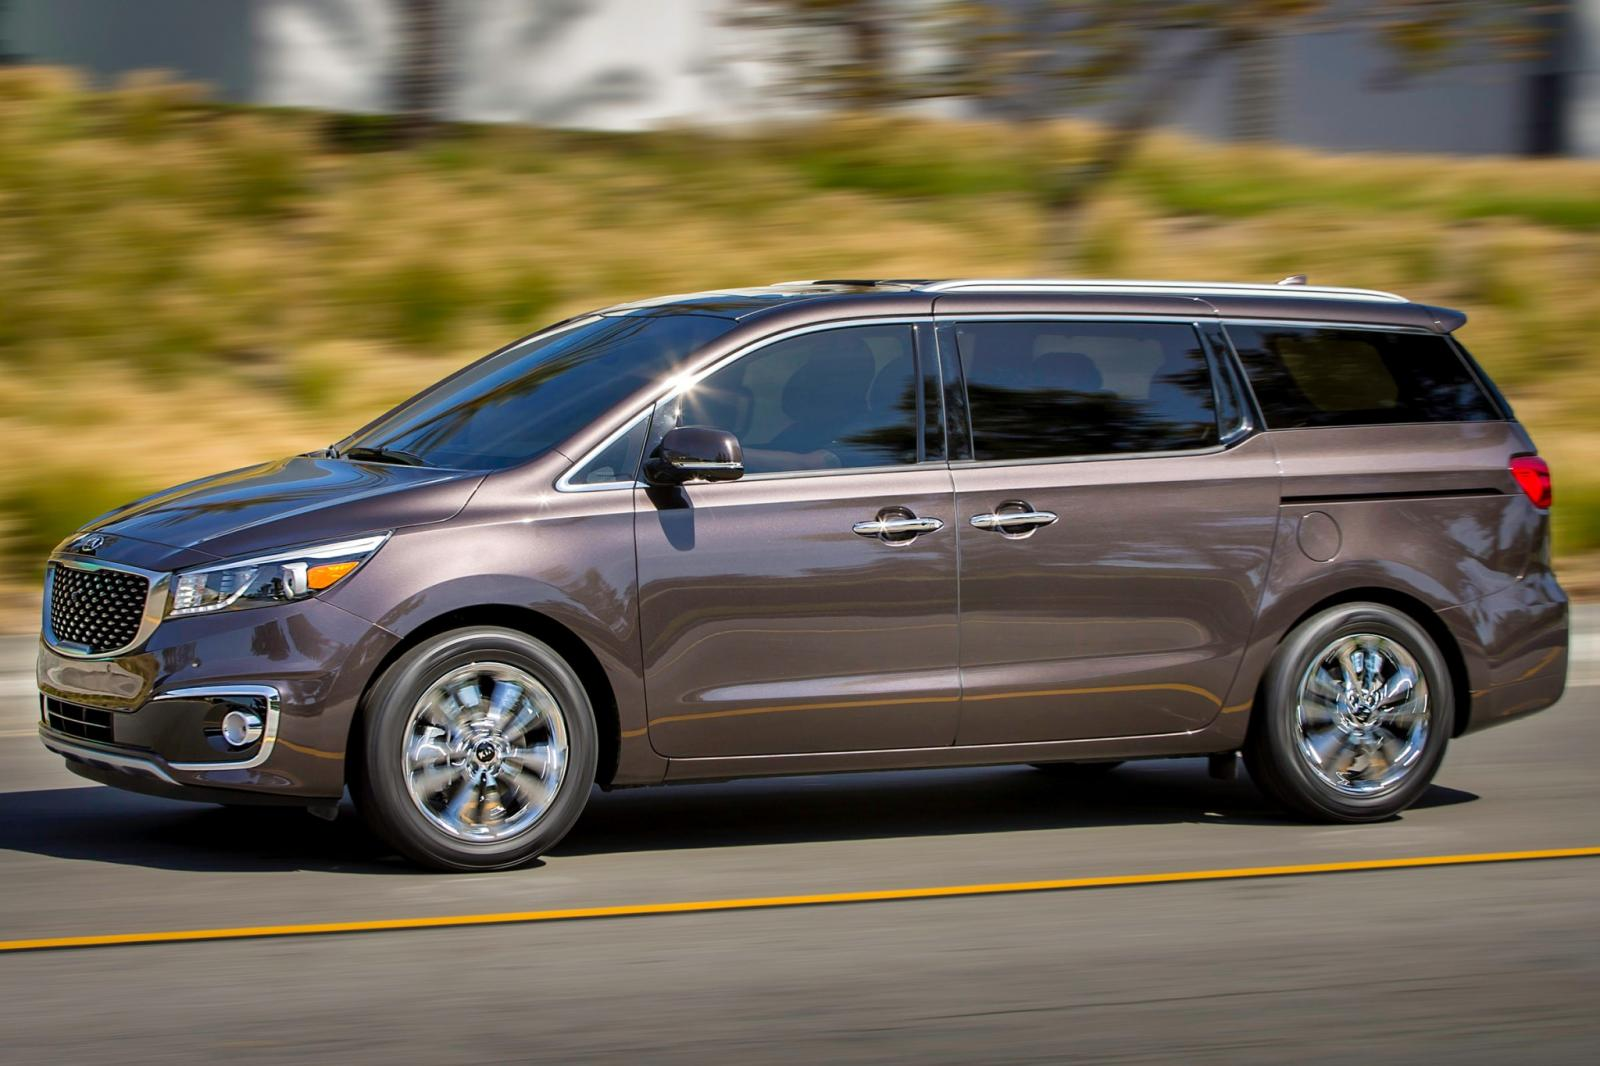 2015 kia sedona information and photos zombiedrive. Black Bedroom Furniture Sets. Home Design Ideas